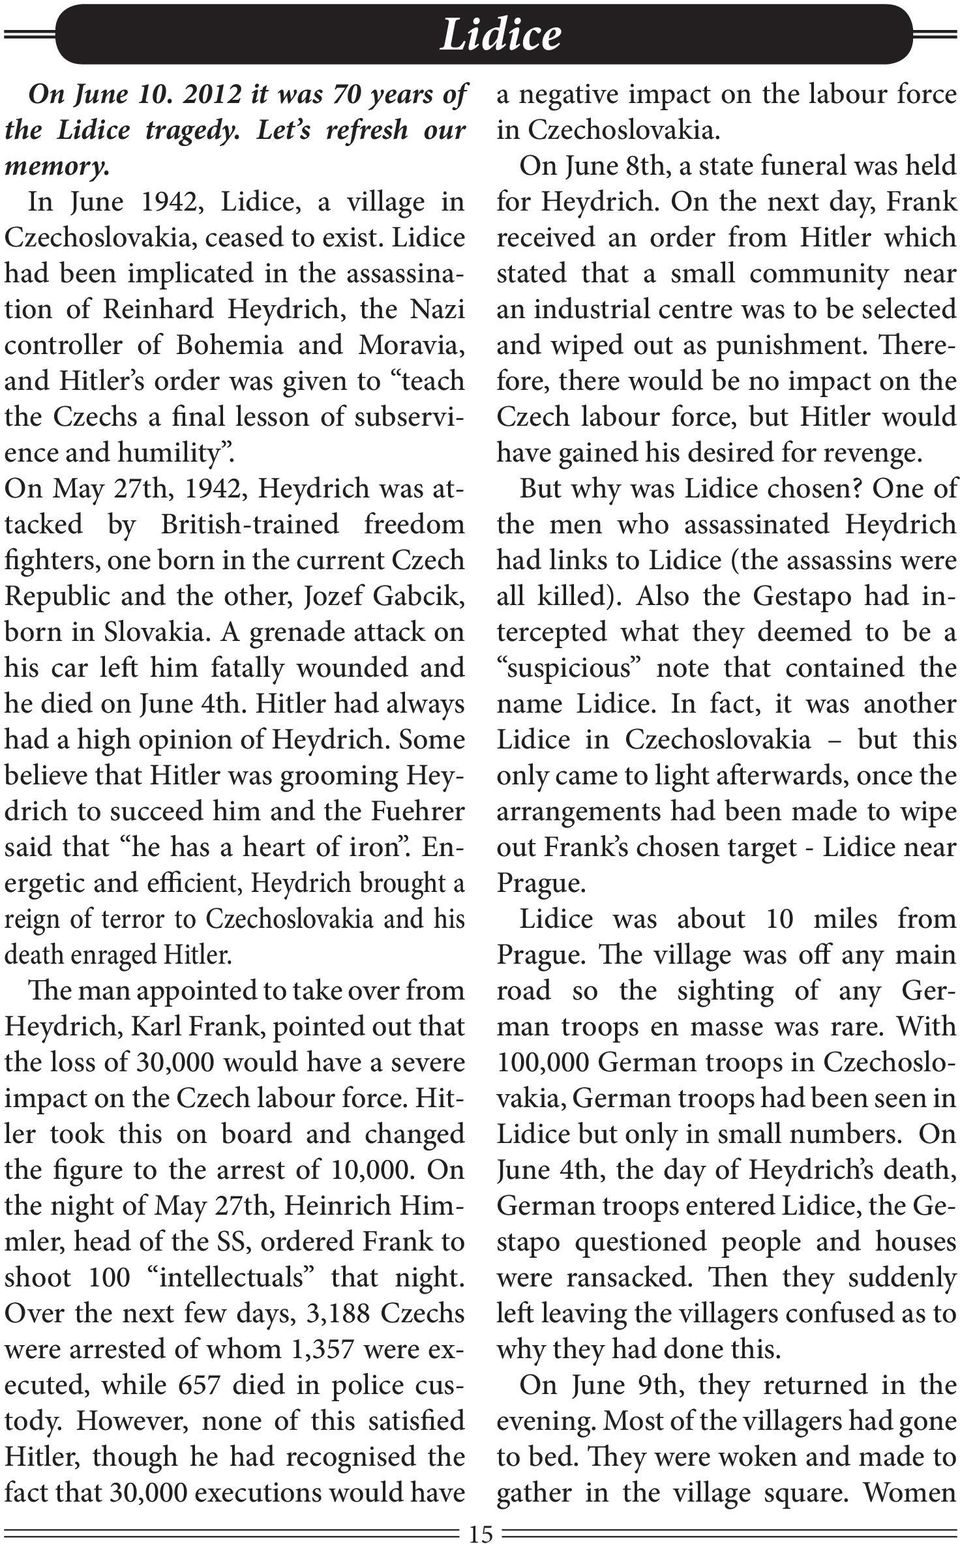 humility. On May 27th, 1942, Heydrich was attacked by British-trained freedom fighters, one born in the current Czech Republic and the other, Jozef Gabcik, born in Slovakia.